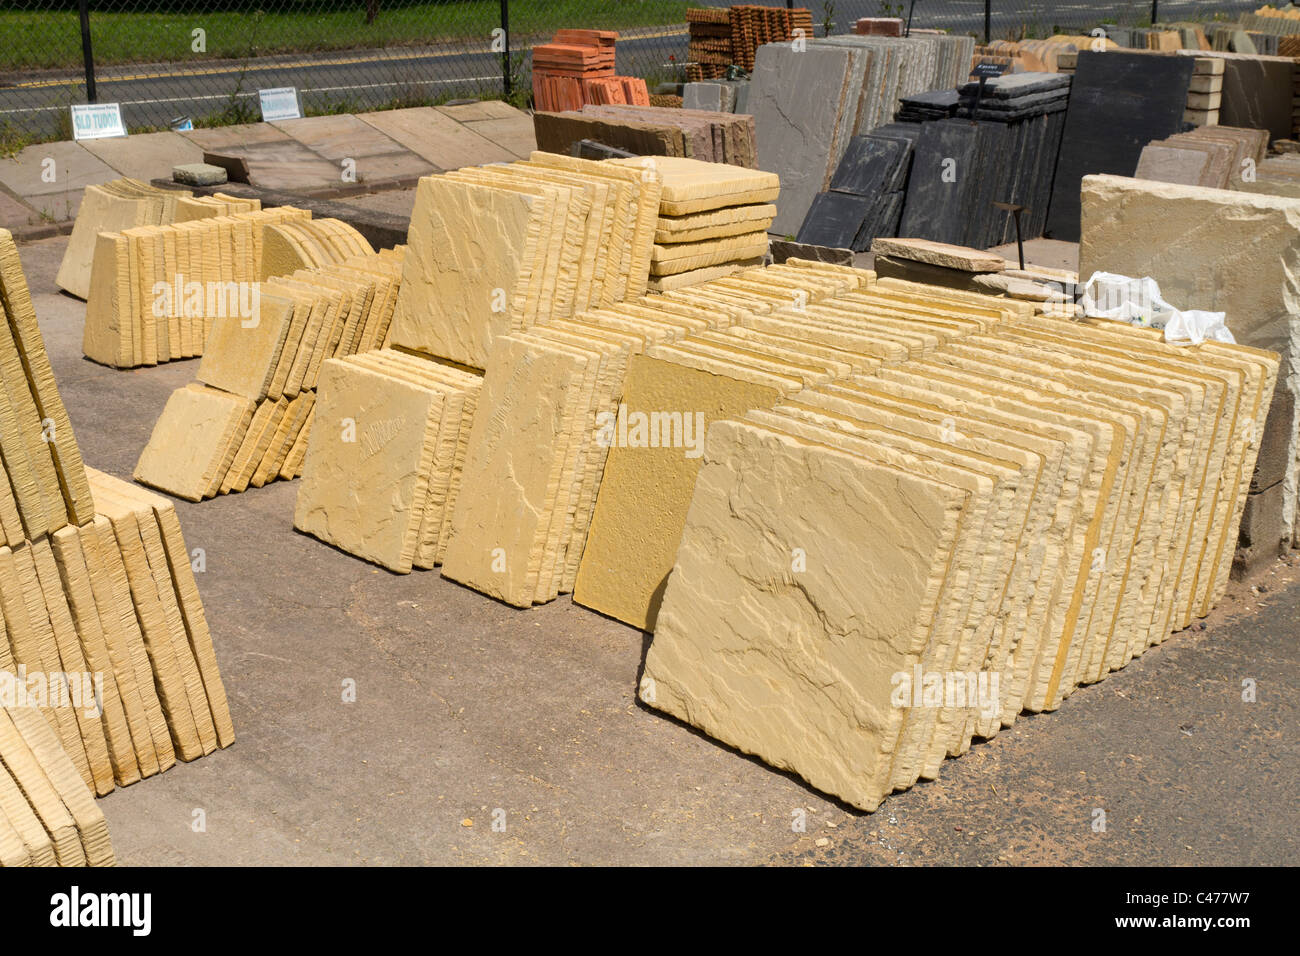 paving slabs for sale in a garden centre stock photo. Black Bedroom Furniture Sets. Home Design Ideas